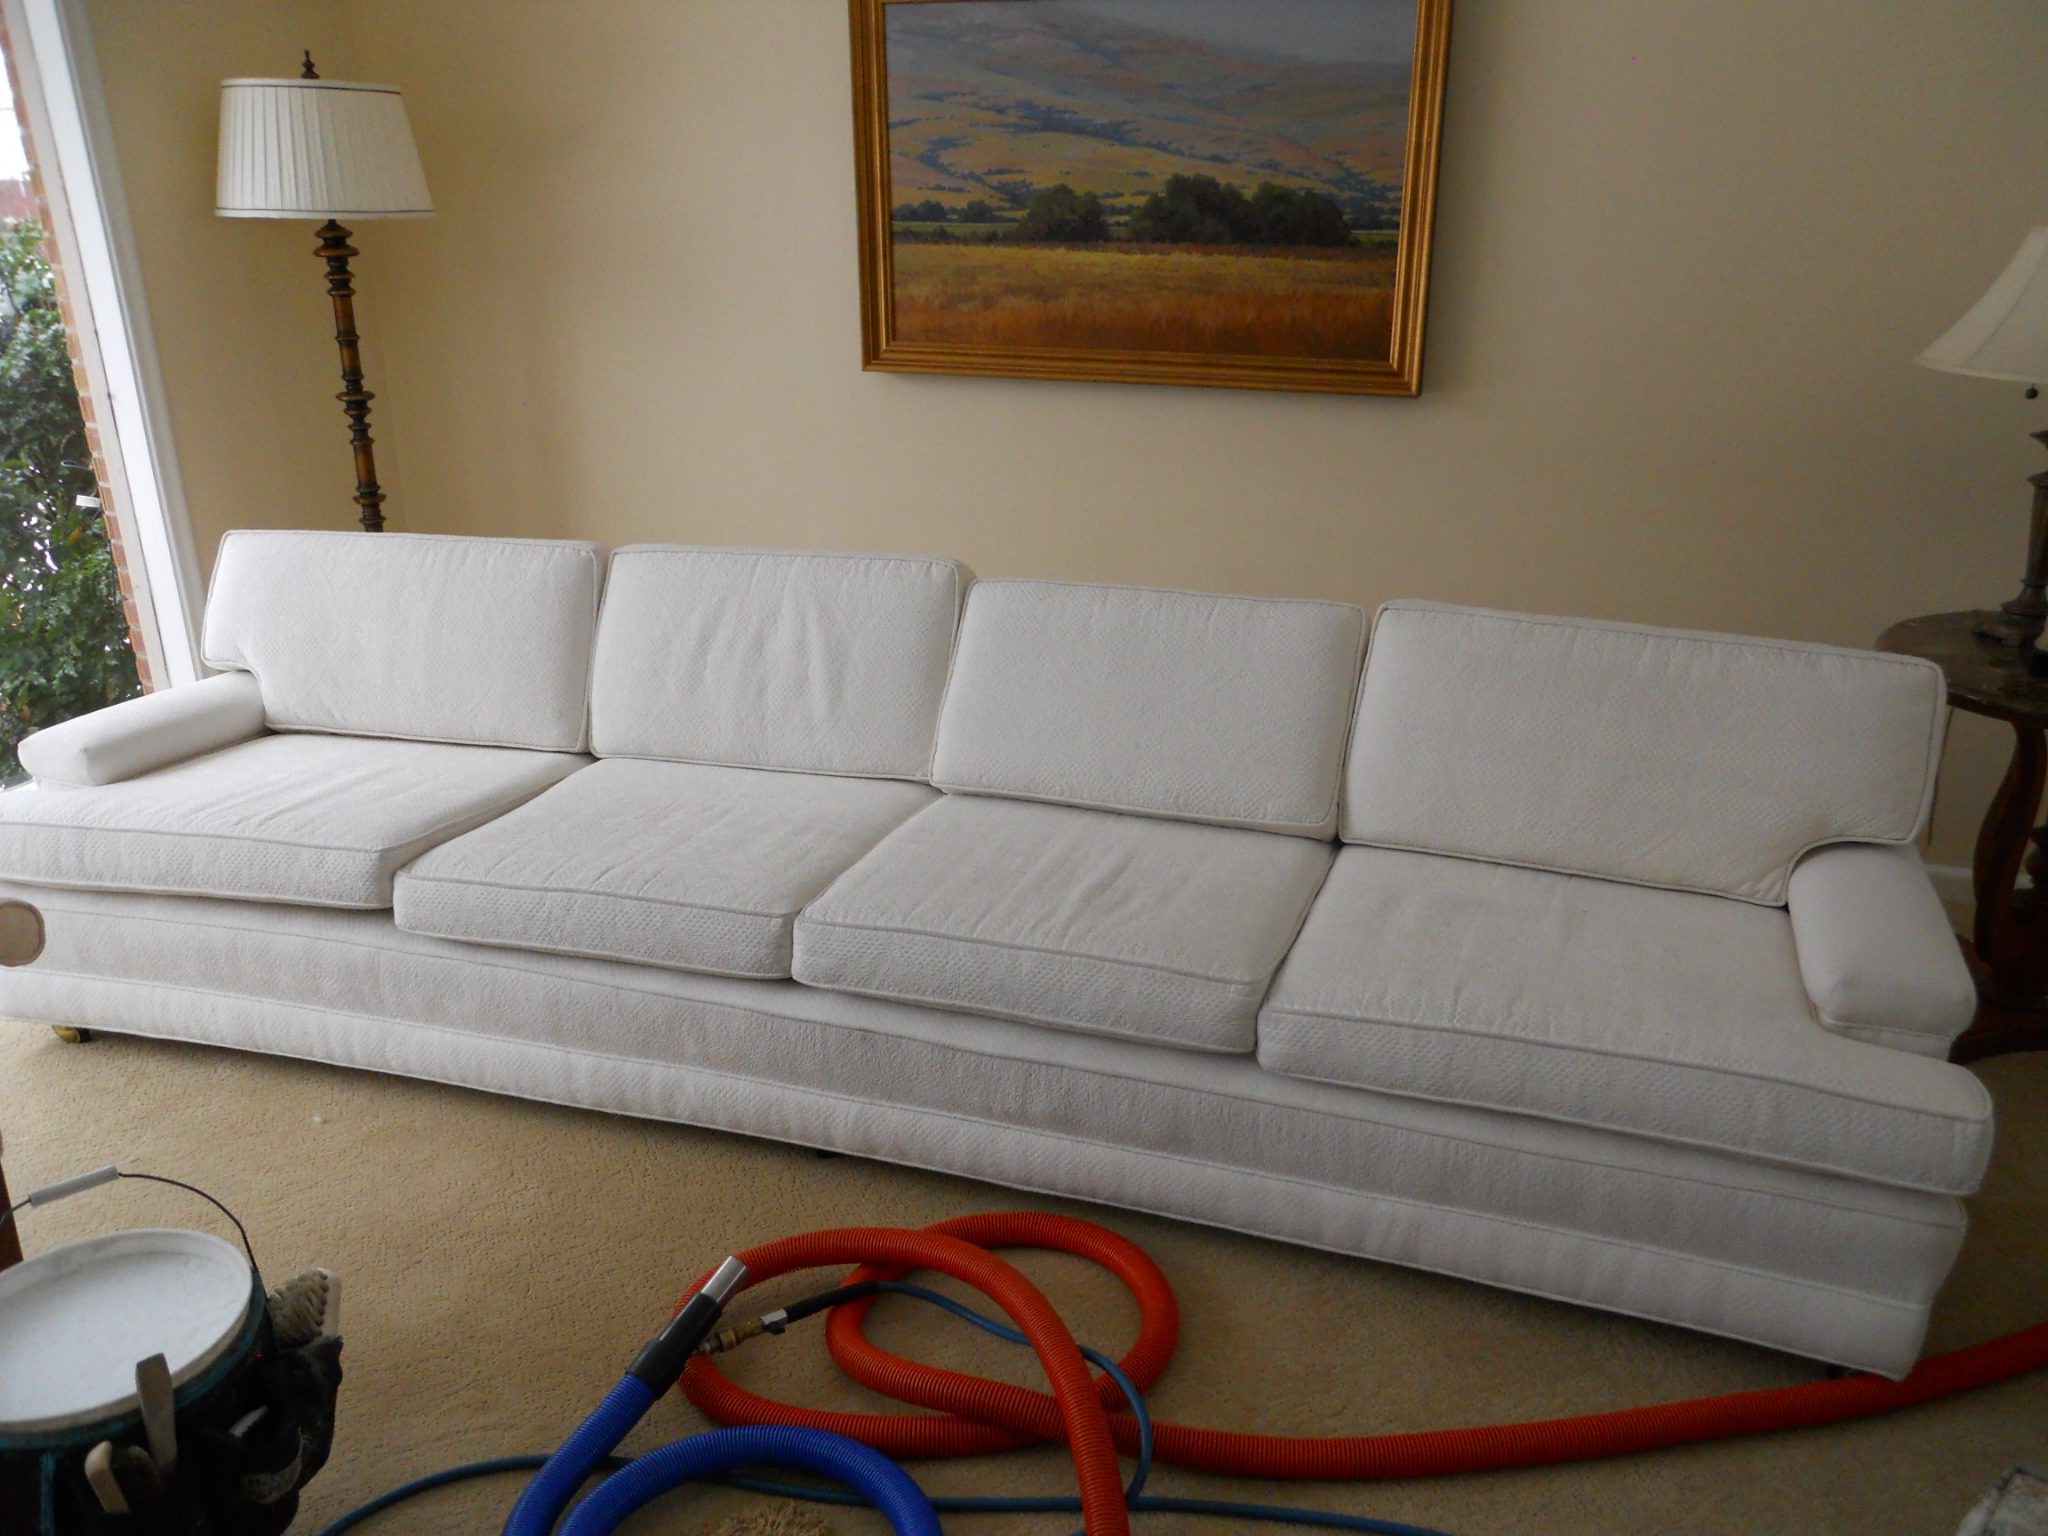 Couch Cleaning Watsons Creek 3097